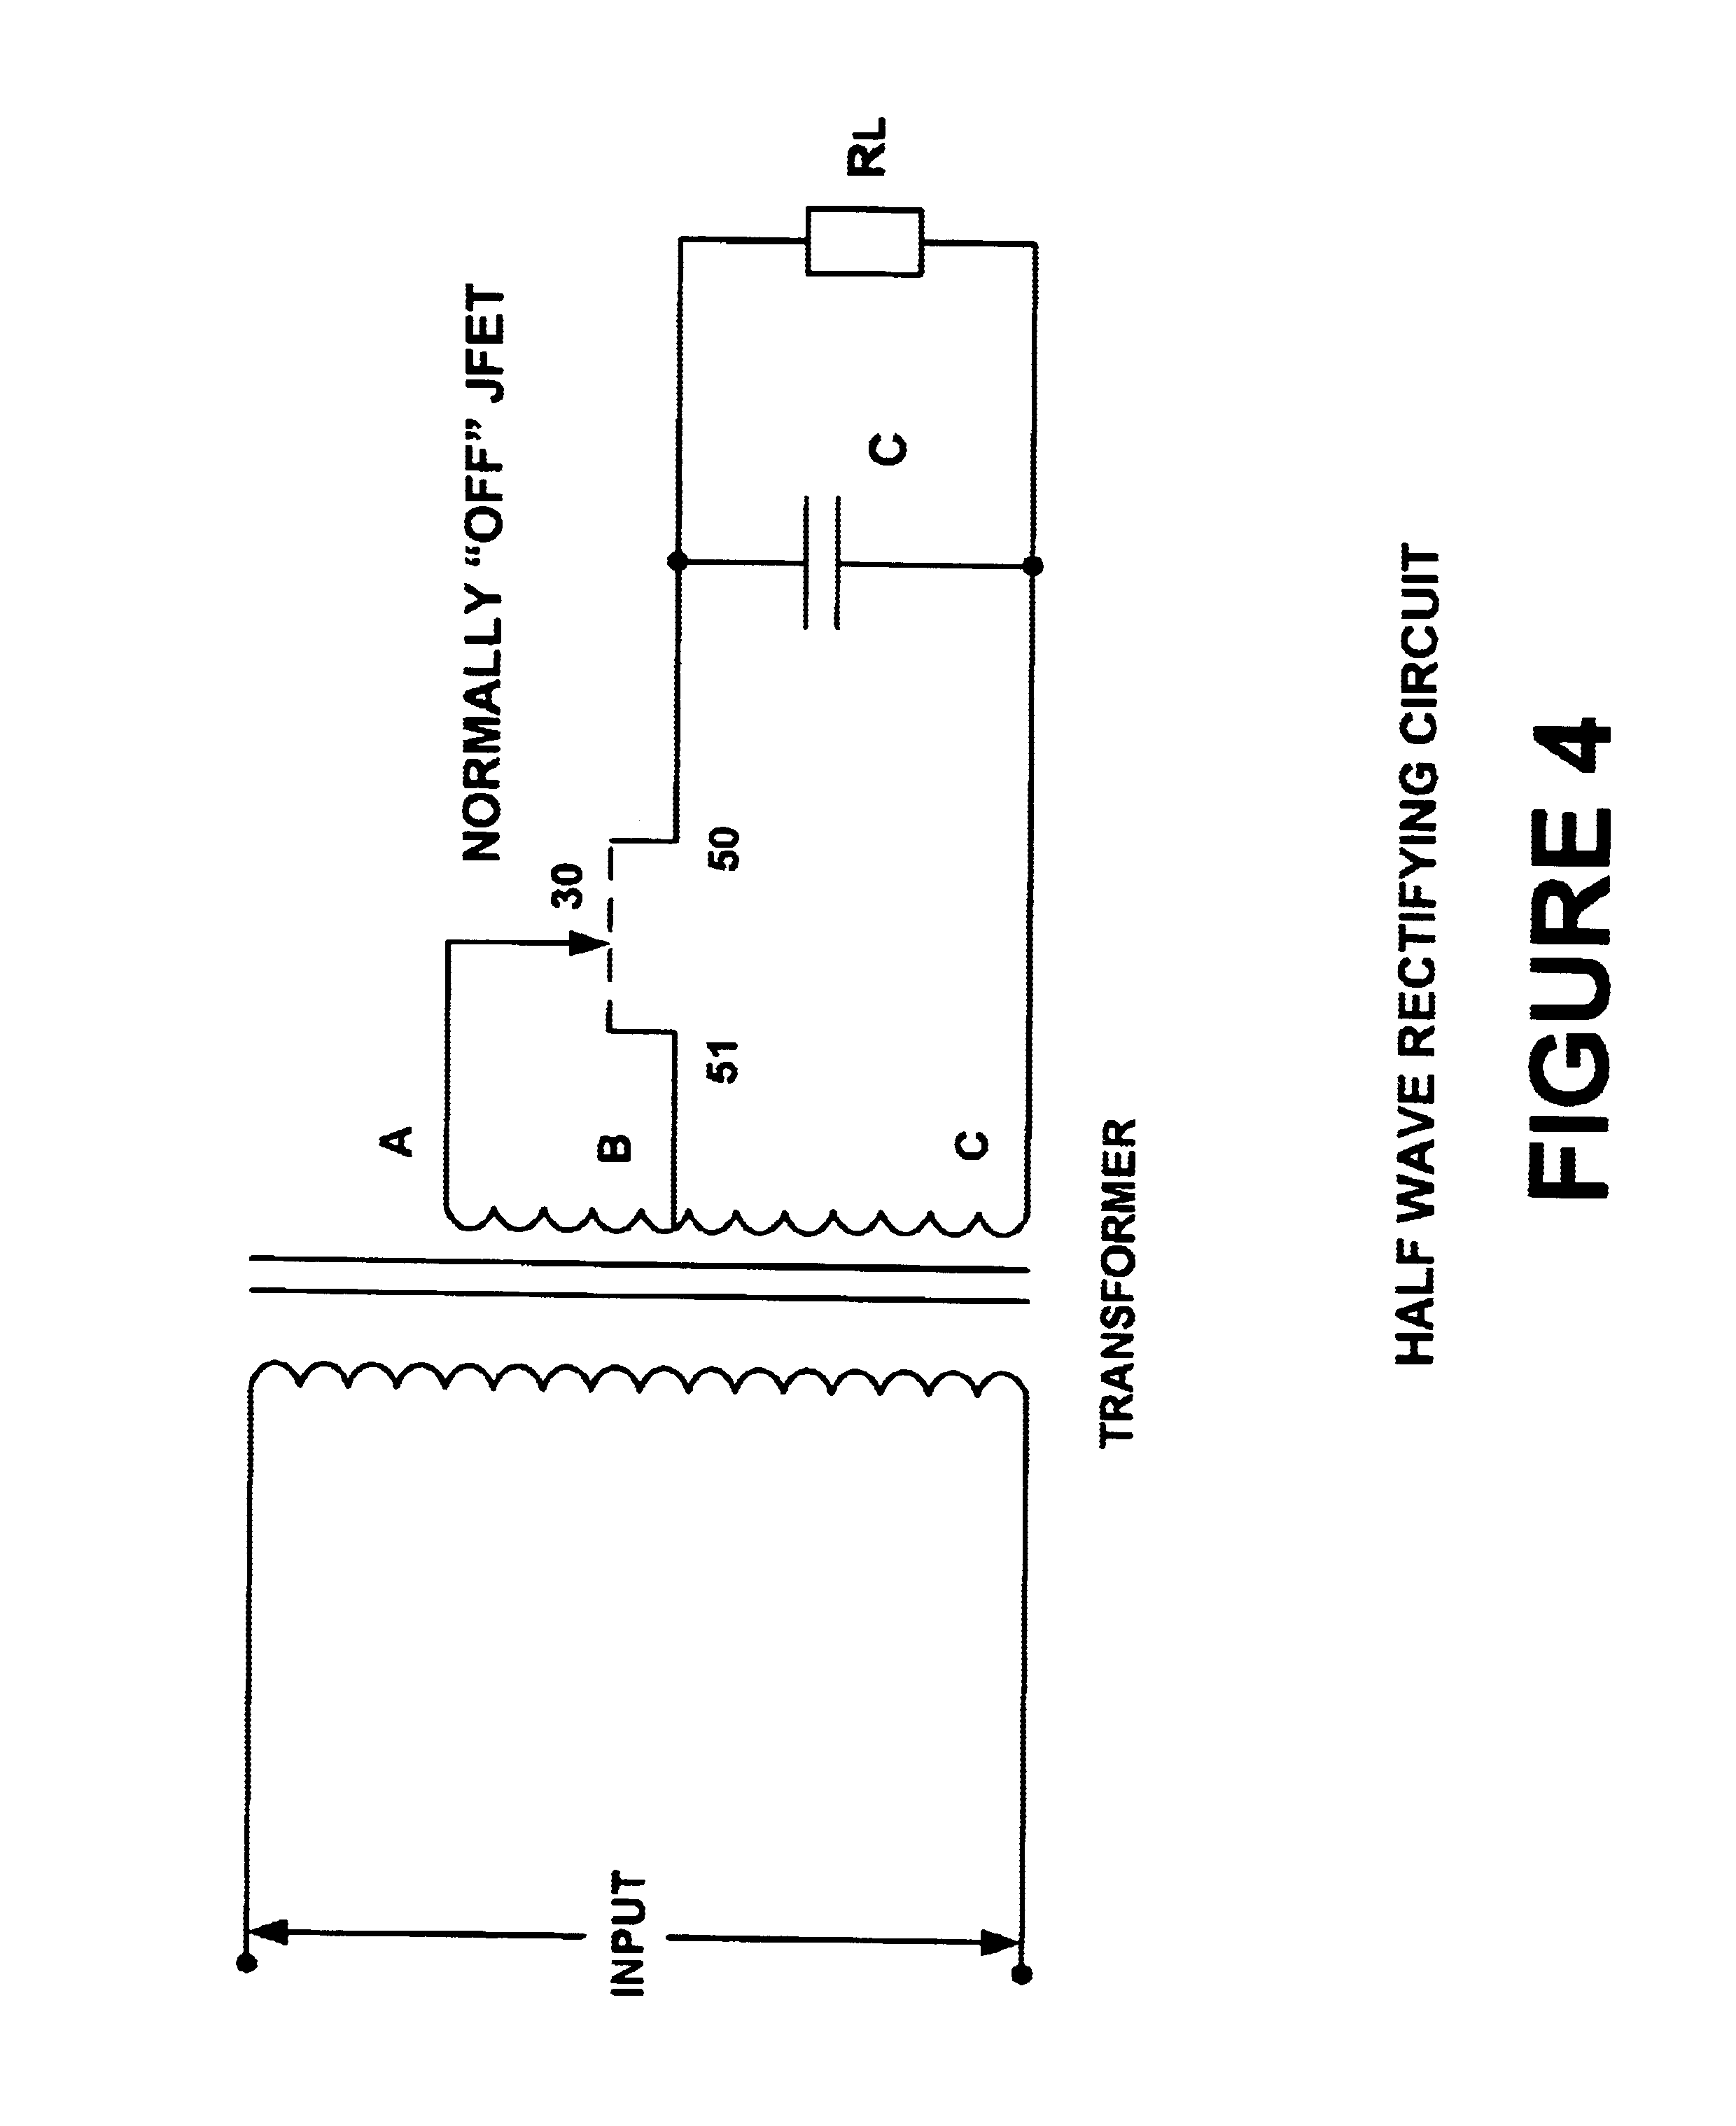 Patent Us6621722 Rectifier Circuits With Low Forward Voltage Jfet Simple Regulator By Drawing